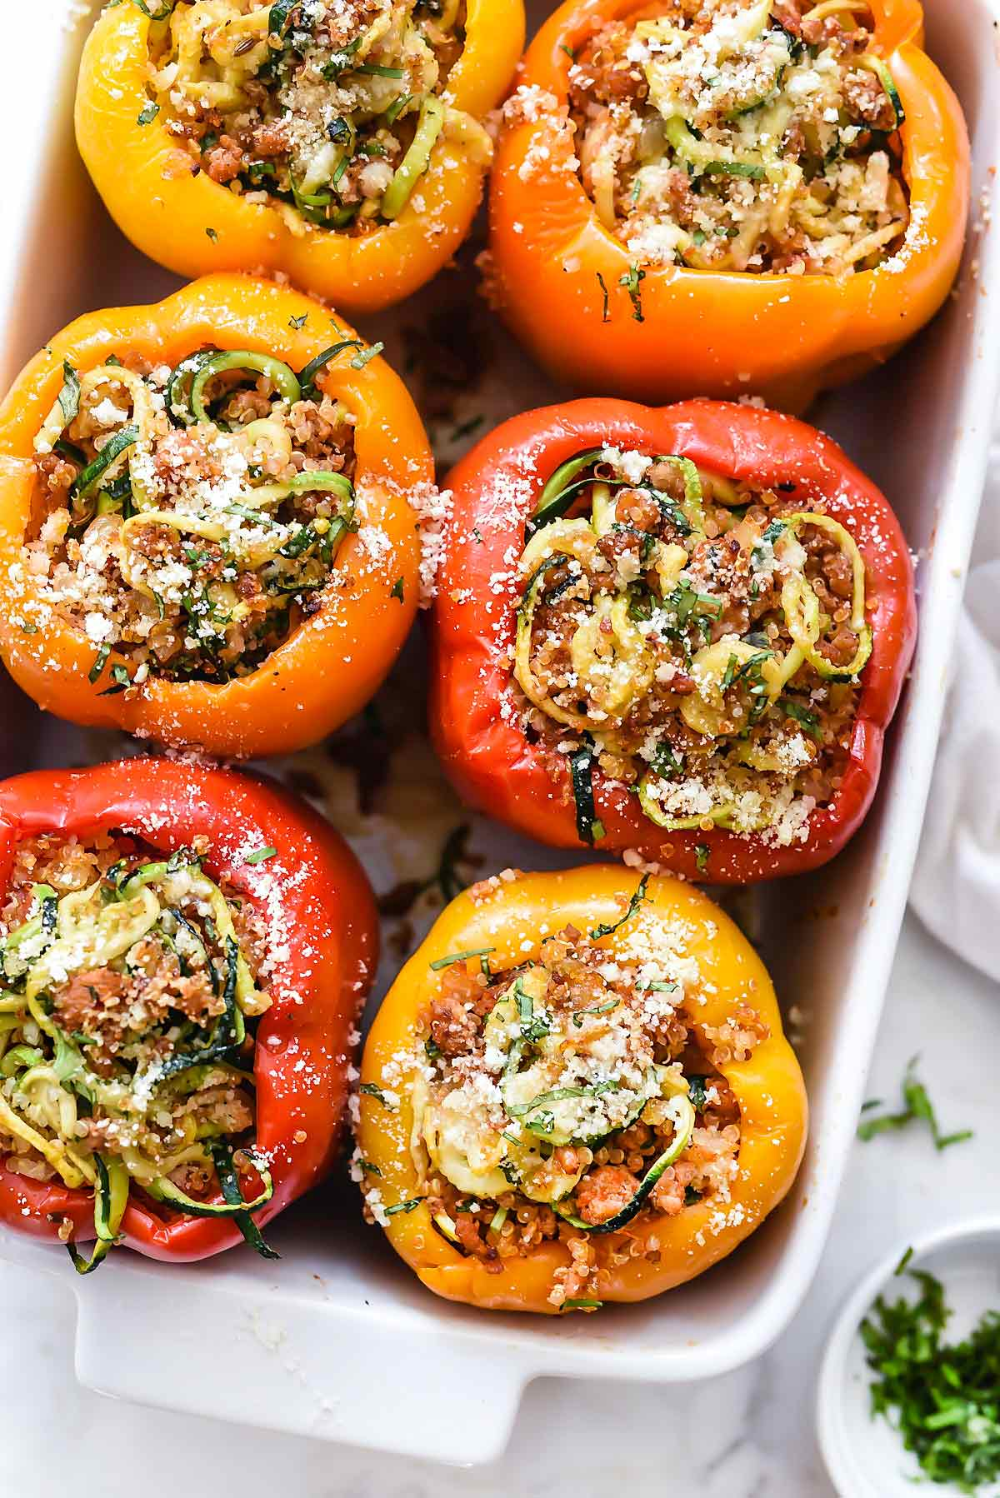 Spiralized Zucchini Quinoa And Turkey Sausage Stuffed Peppers Foodiecrush Com In 2020 Easy Stuffed Pepper Recipe Stuffed Peppers Peppers Recipes